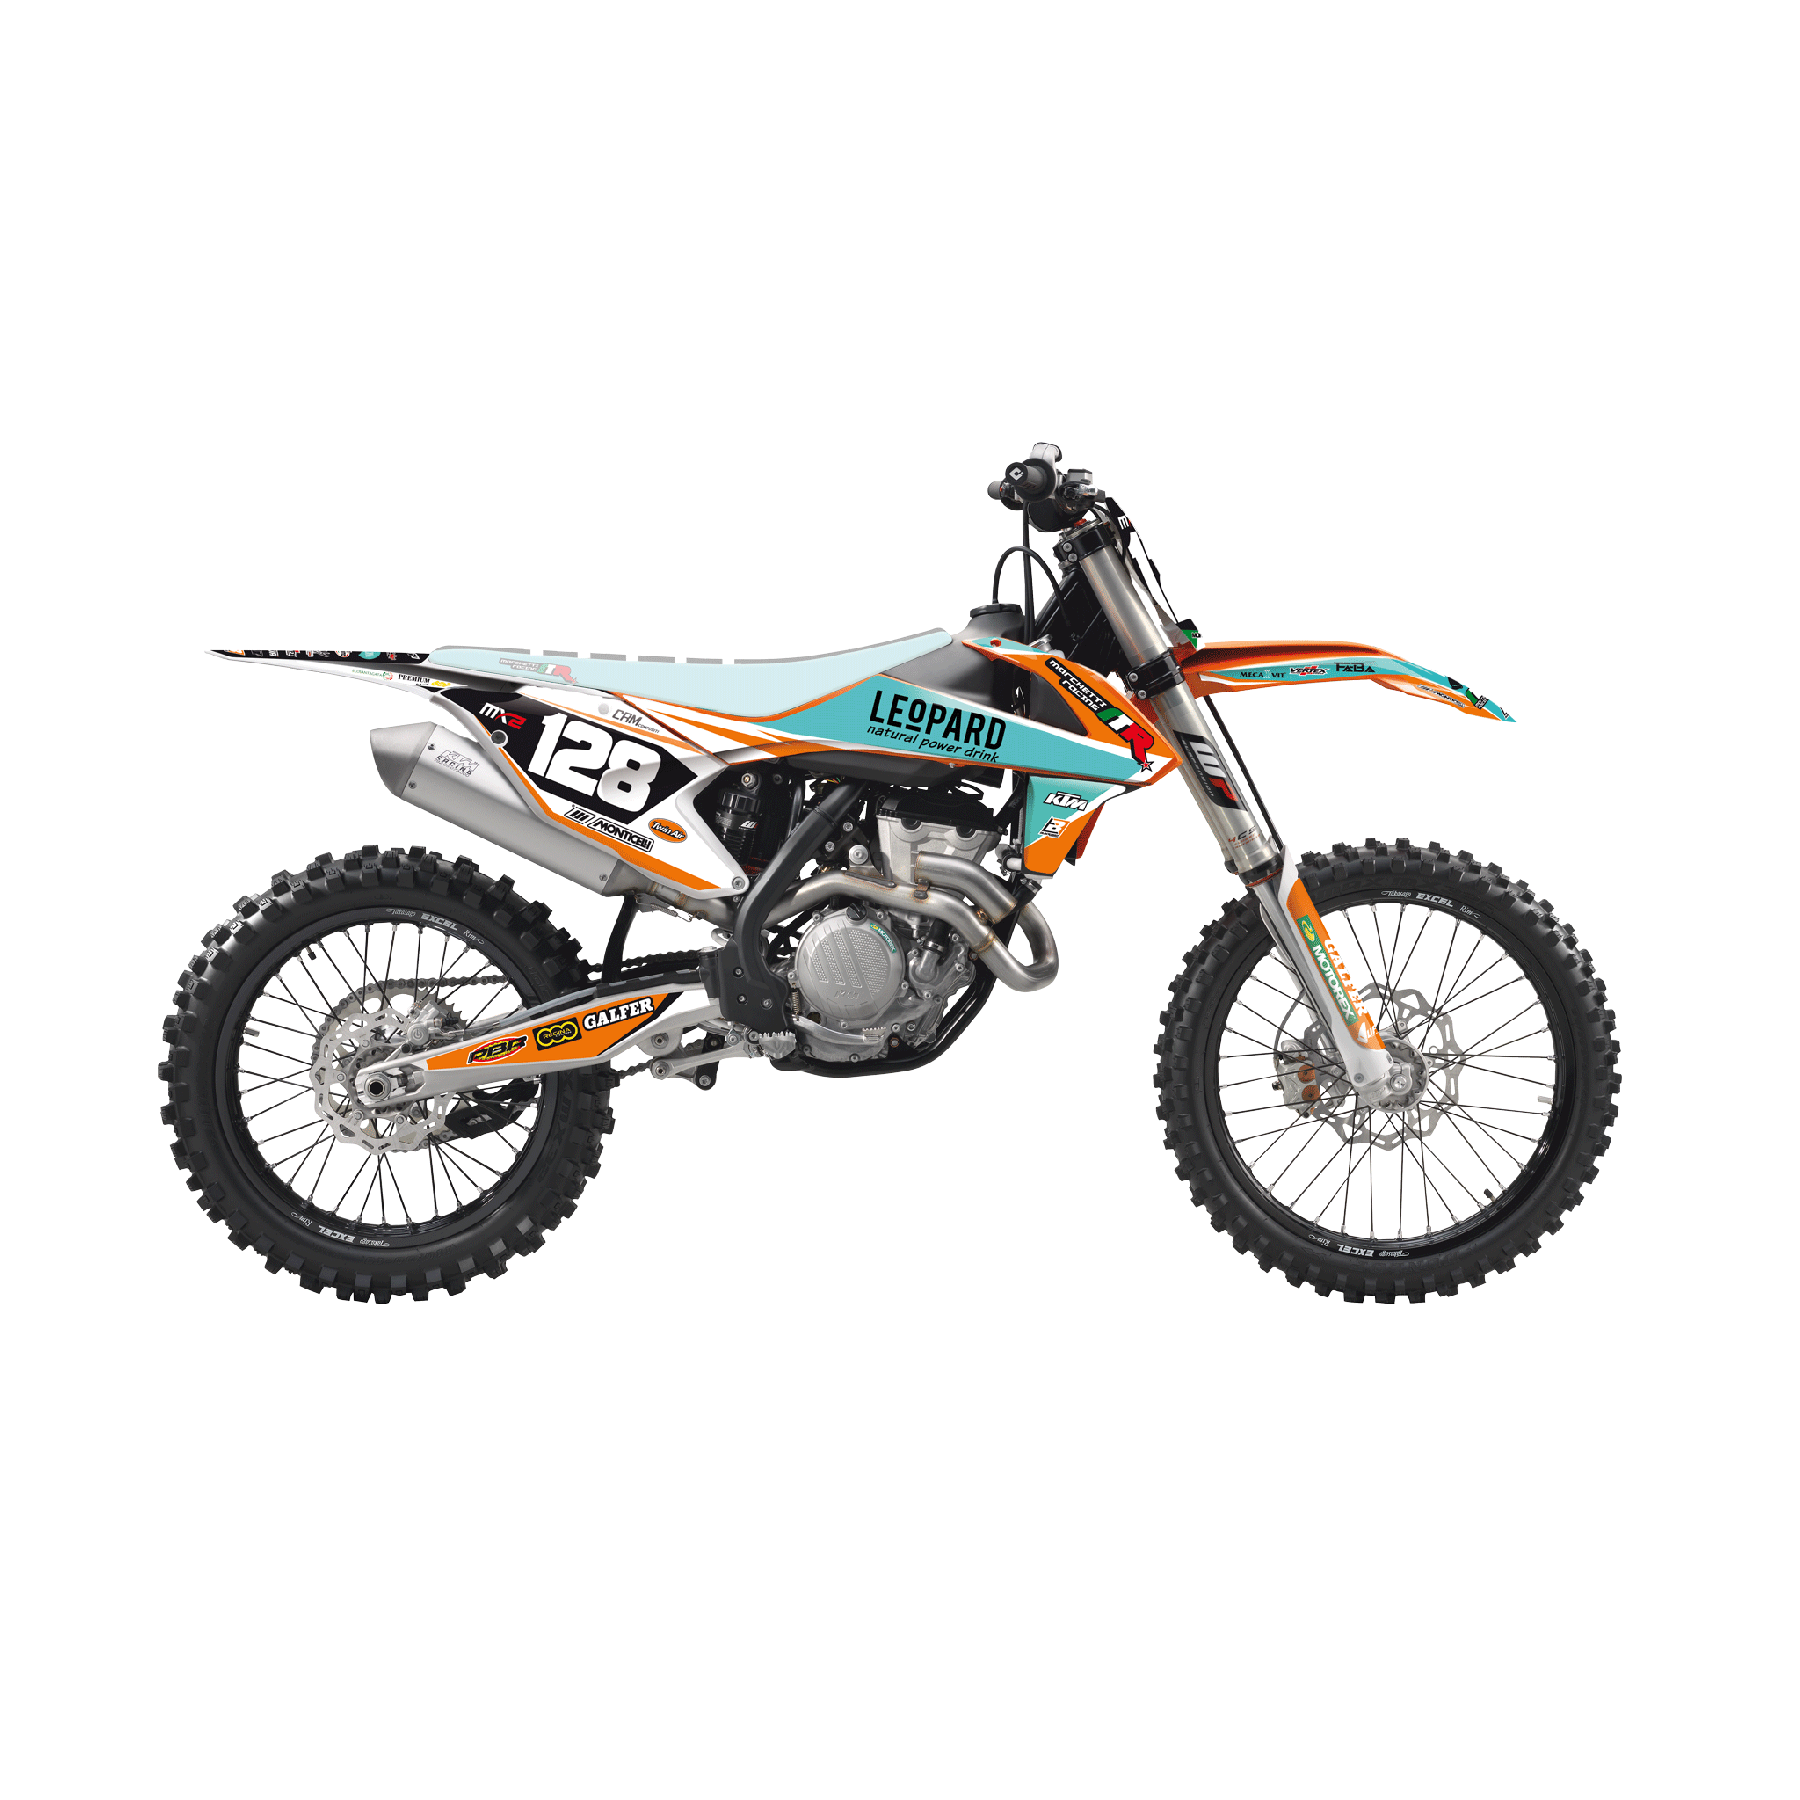 Blackbird Kit Adesivi Replica Ktm Marchetti Racing